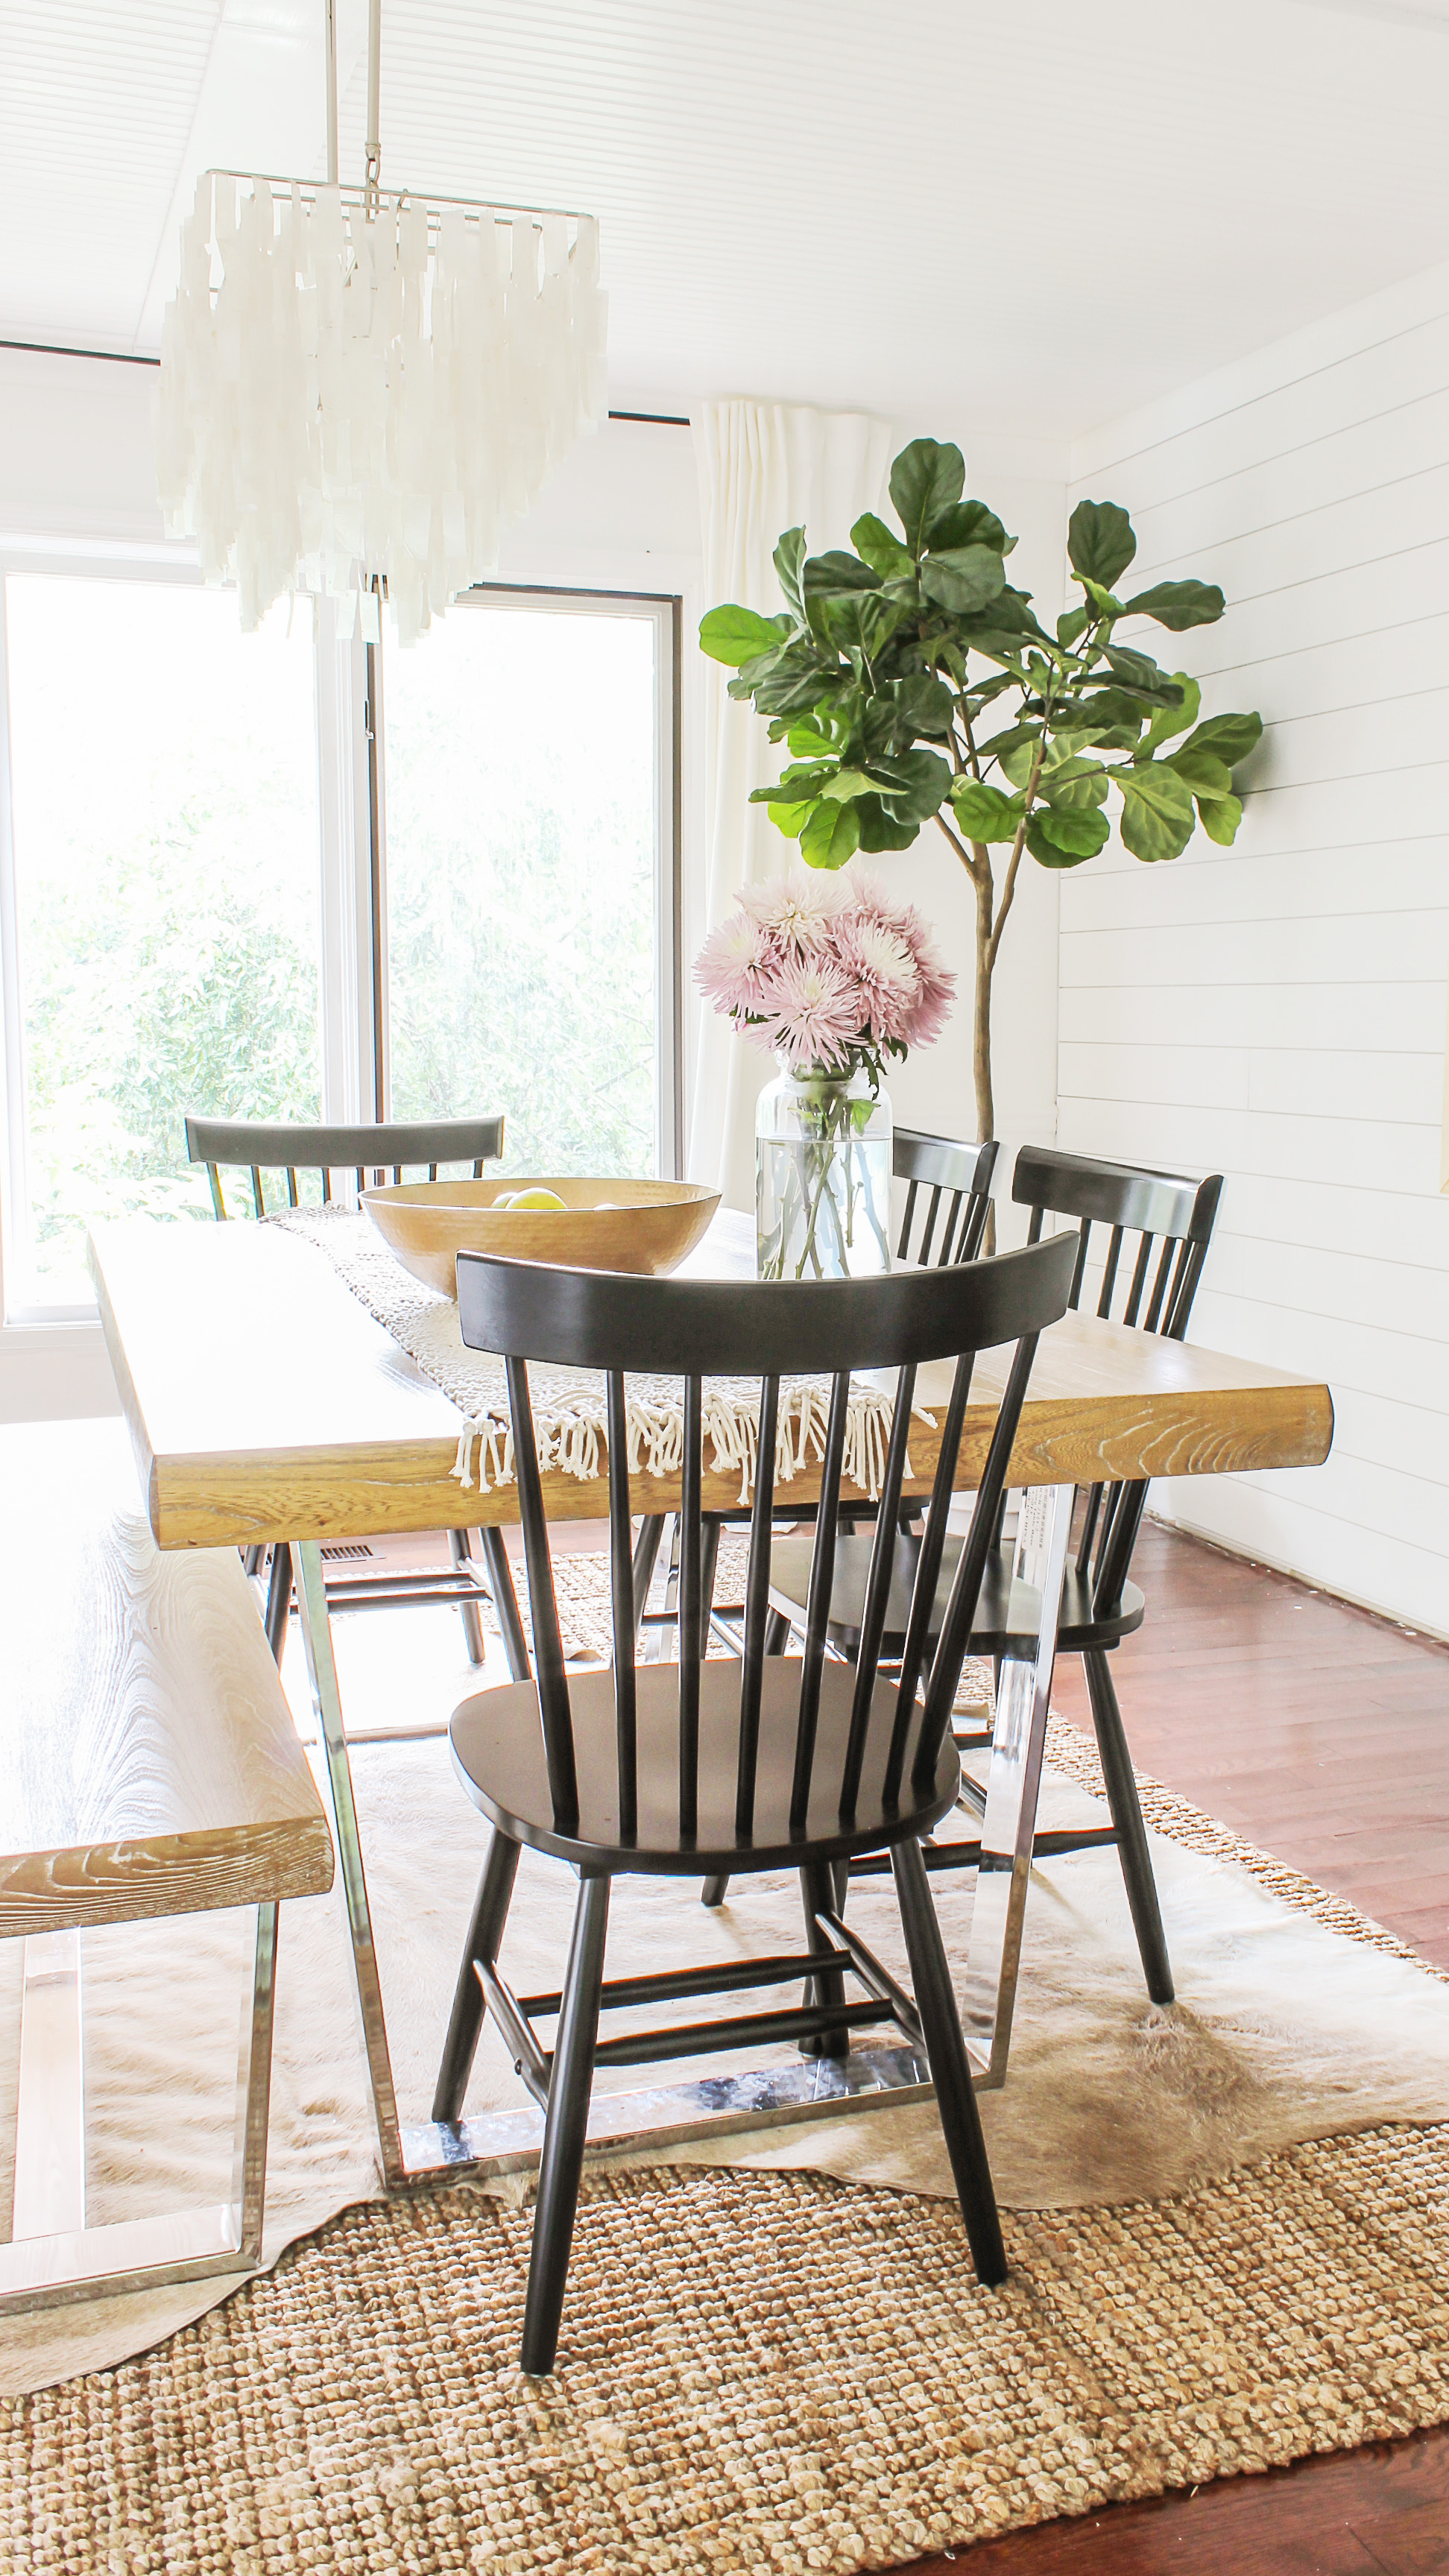 where to get modern farmhouse dining chairs on the cheap & Modern Farmhouse Dining Chairs Under $100 - Decor on the Cheap